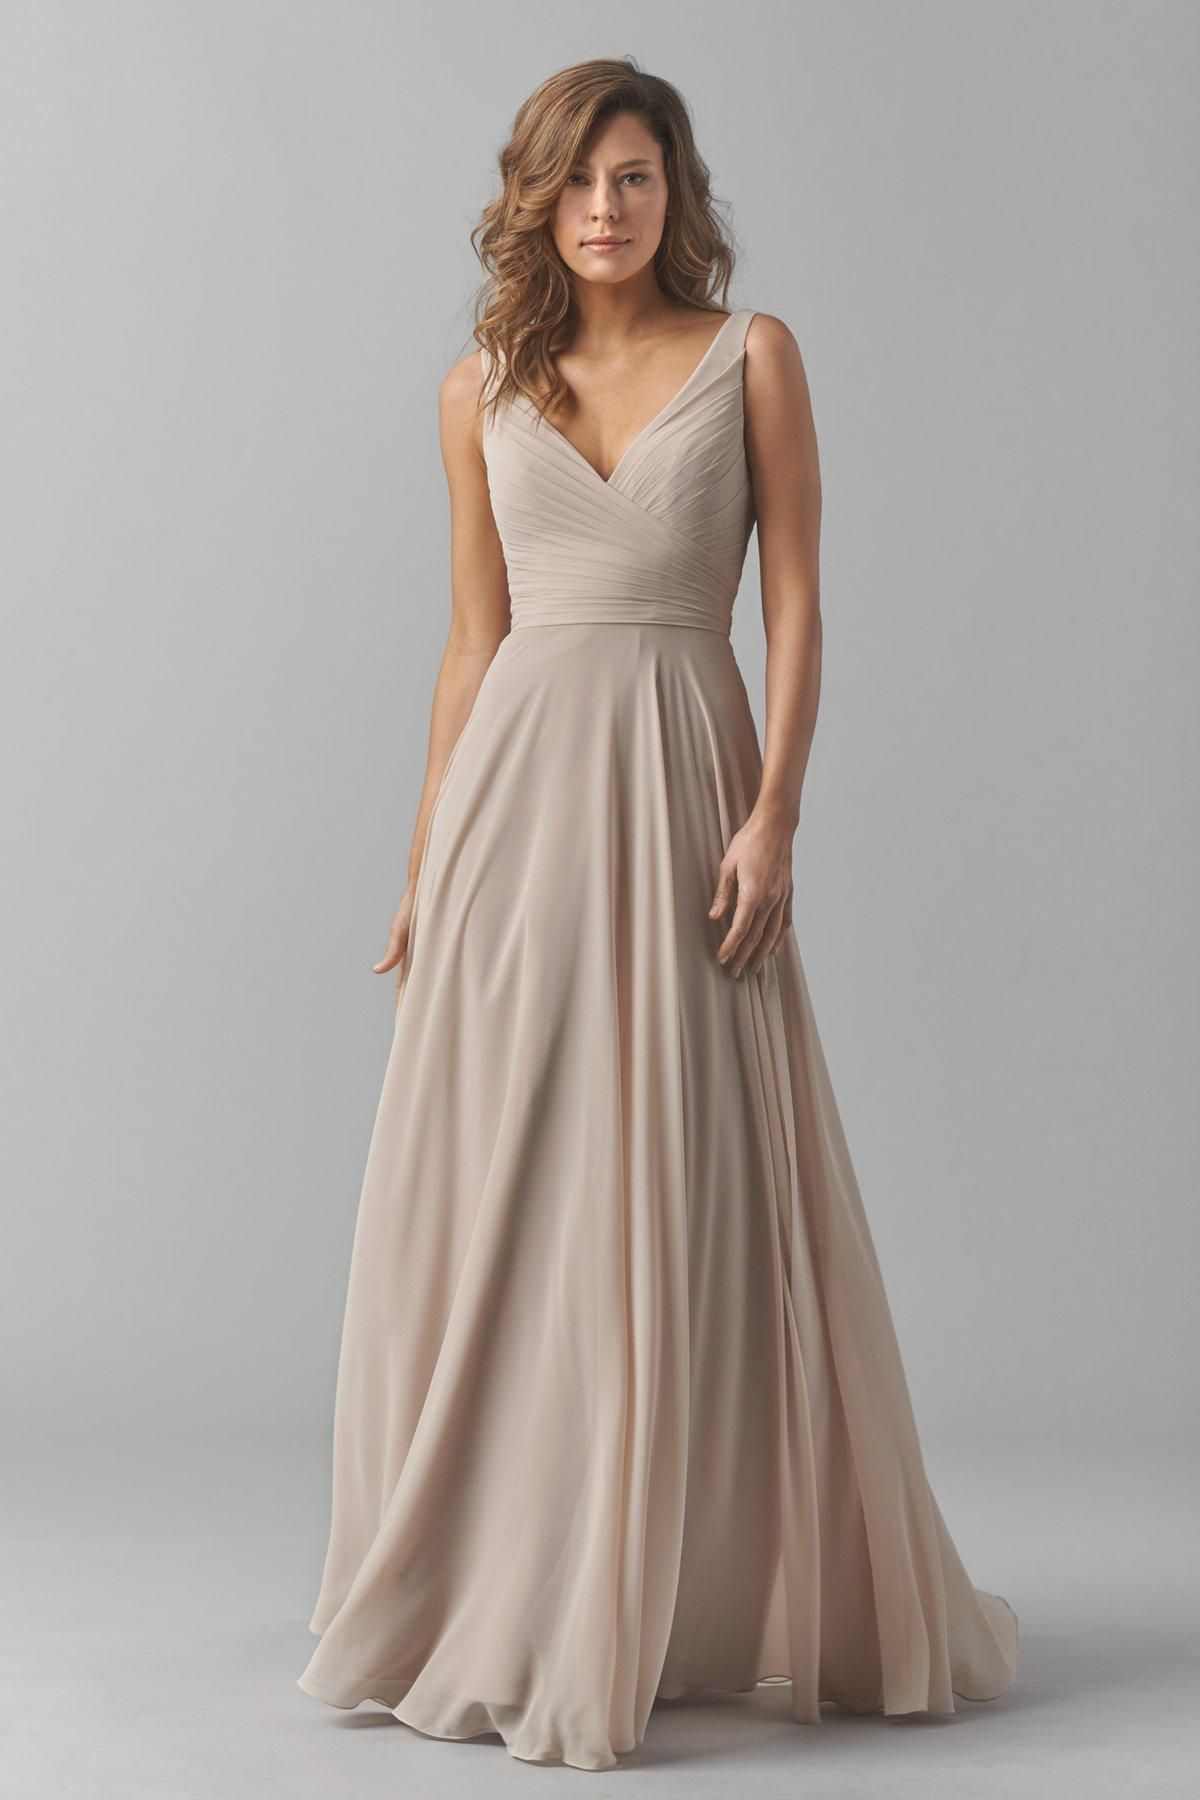 Shop watters bridesmaid dress brescia in bella lace at shop watters bridesmaid dress brescia in bella lace at weddington way find the perfect made to order bridesmaid dresses for your bridal party in ombrellifo Images